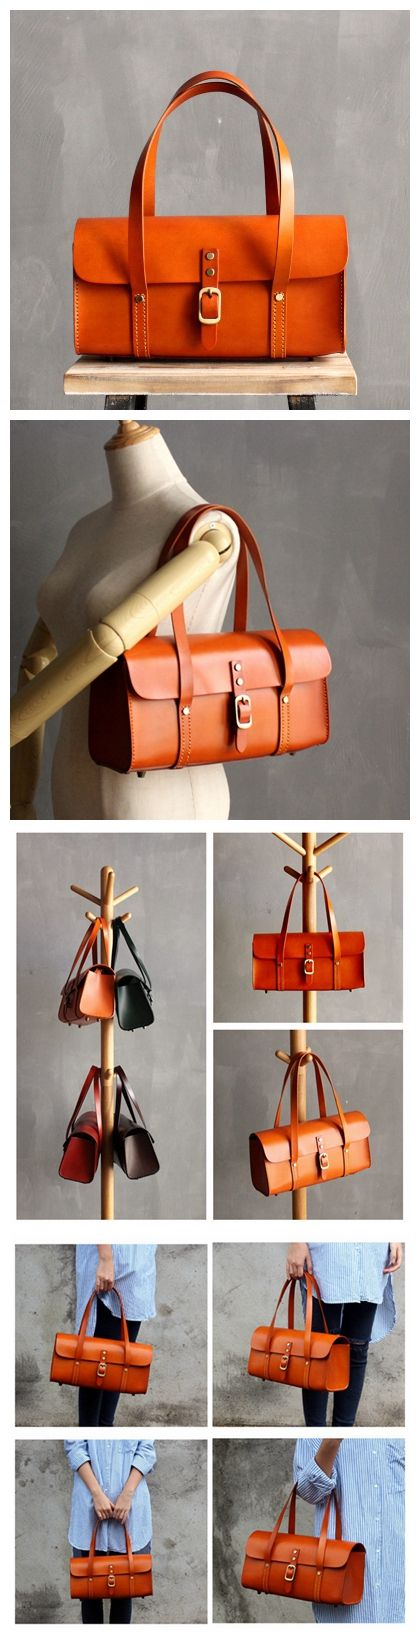 Handmade Awesome Vegetable Tanned Leather Barrel Bag Women's Fashion Handbag Shoulder Bag SQ05--LISABAG